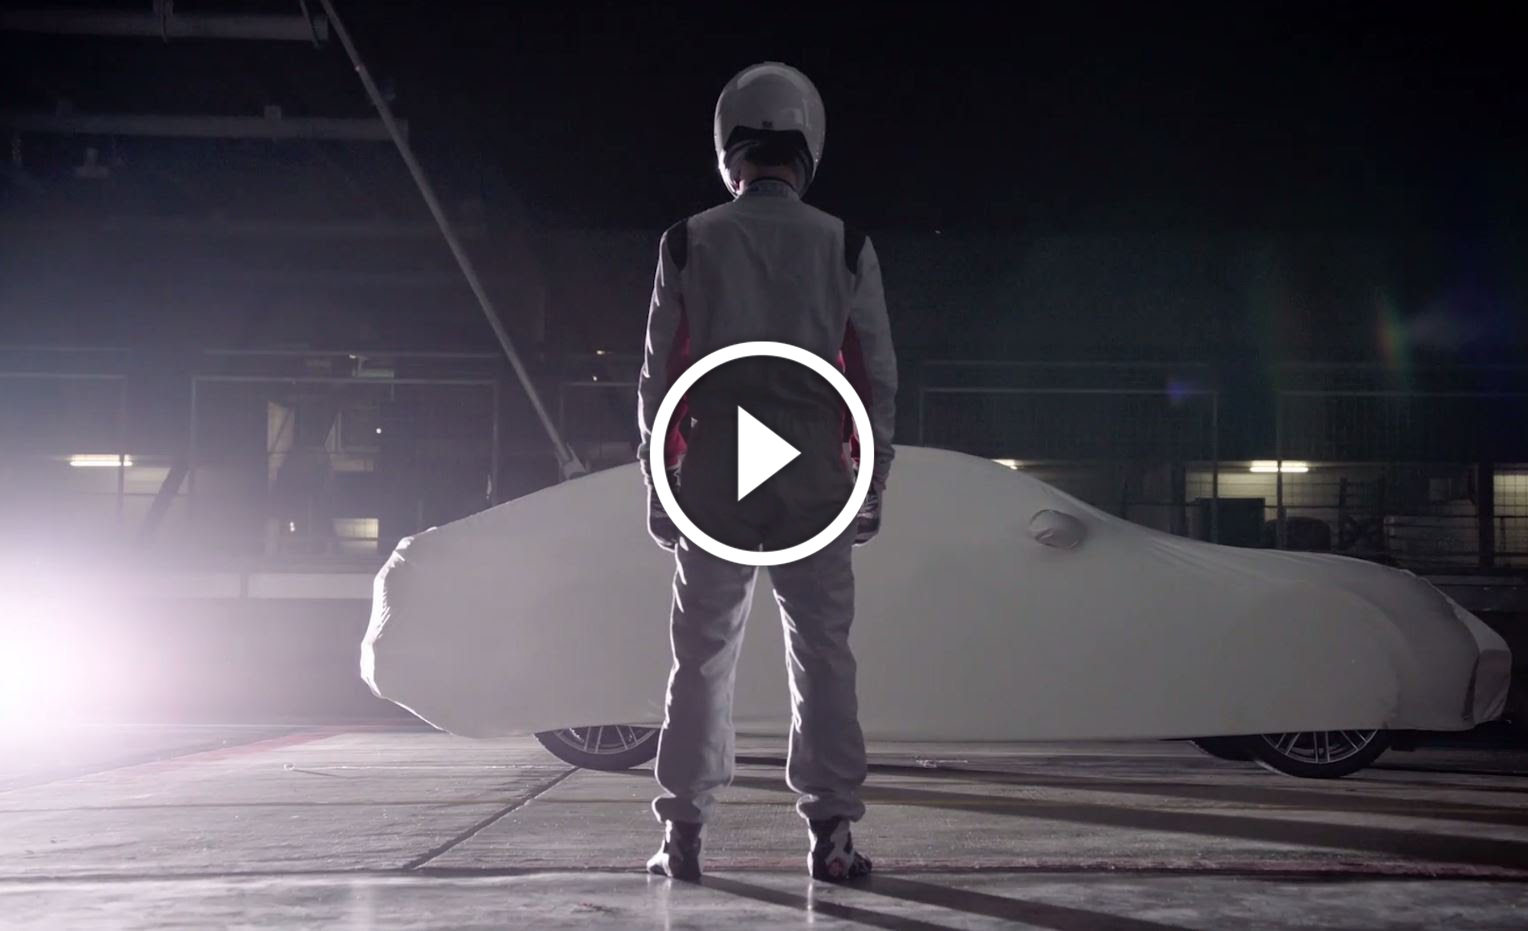 Video... The new Panamera is coming